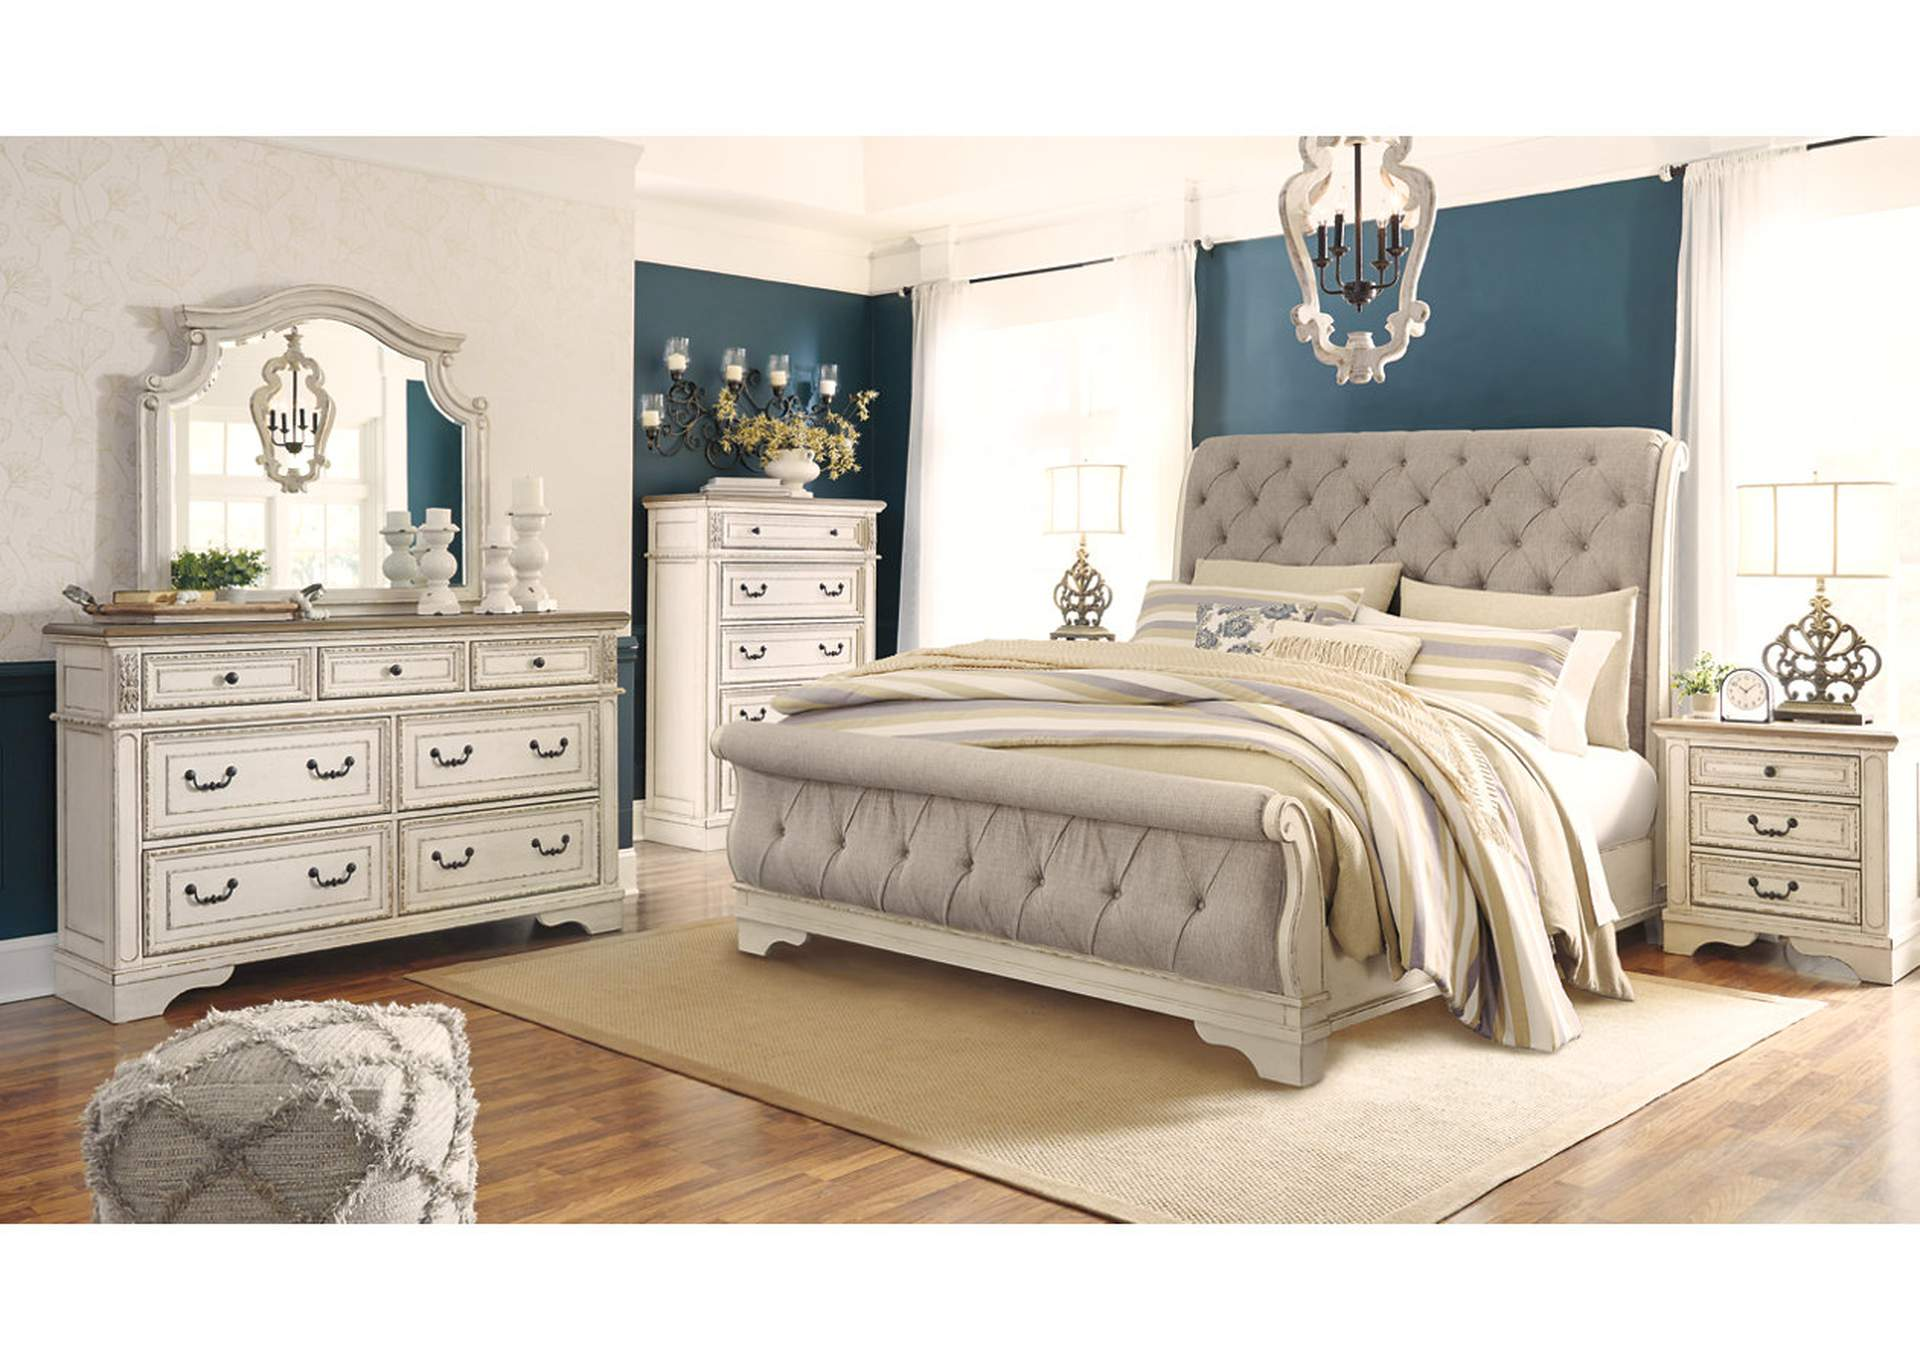 Realyn Chipped Queen Sleigh Bed w/Dresser & Mirror